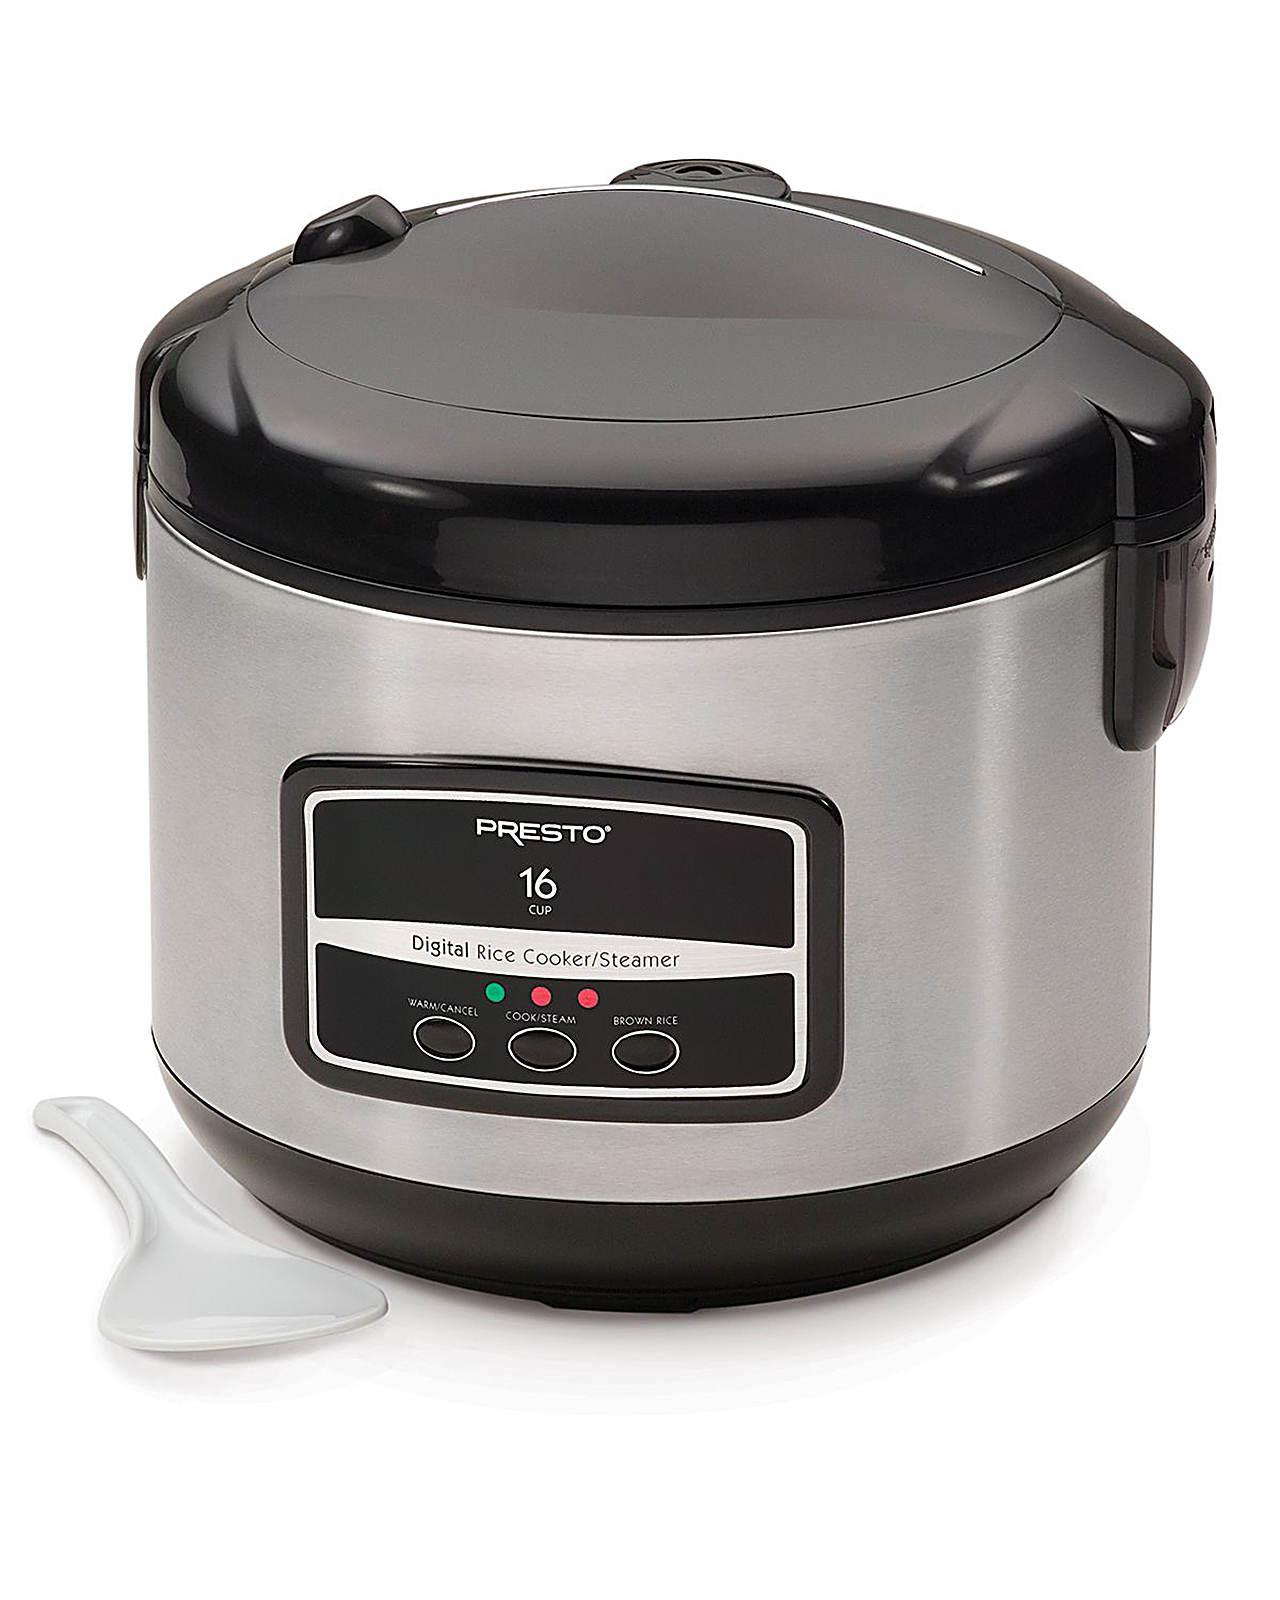 Presto 16 Cup Stainless Steel (Silver) Digital Rice Cooker / Steamer - 05813